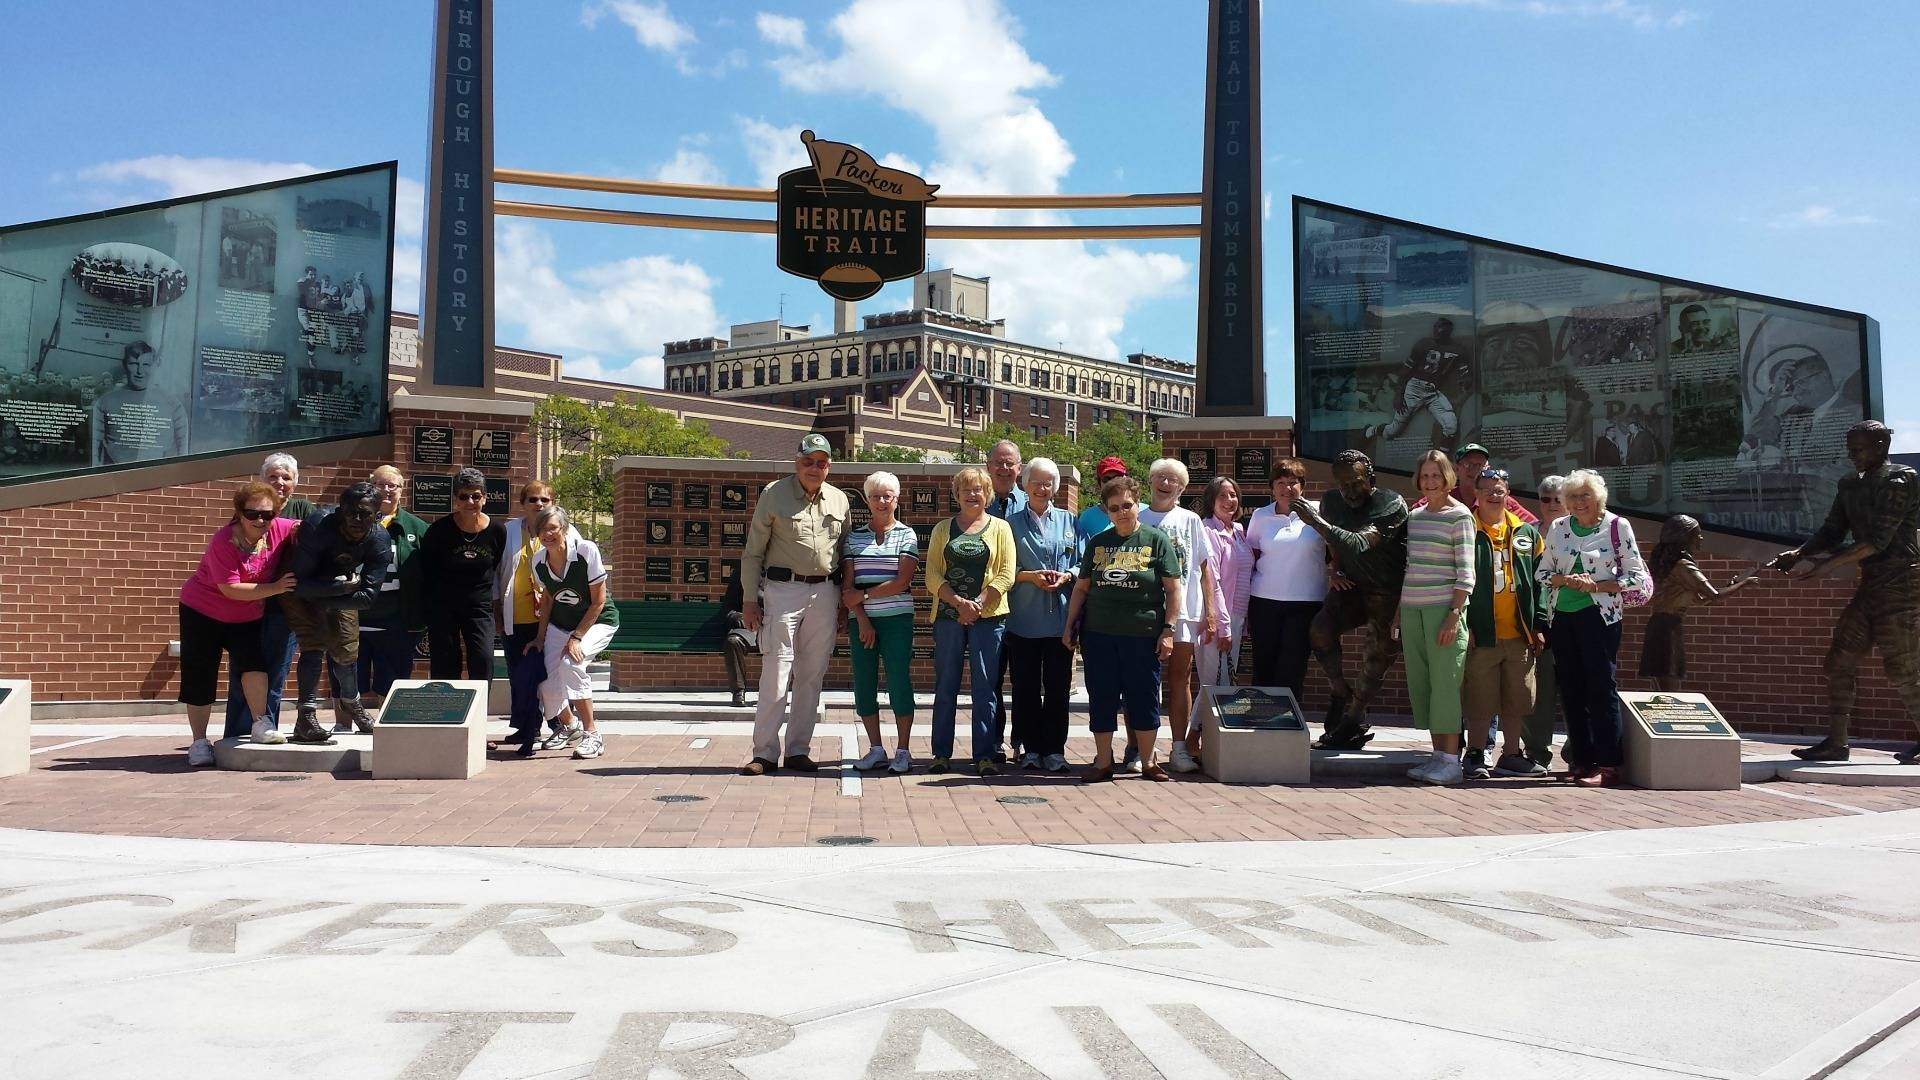 Greater Green Bay is a welcoming are for large groups of Packers fans, foodies, history buffs, International visitors and so much more. Work with the CVB to create the perfect tour itinerary for your group.